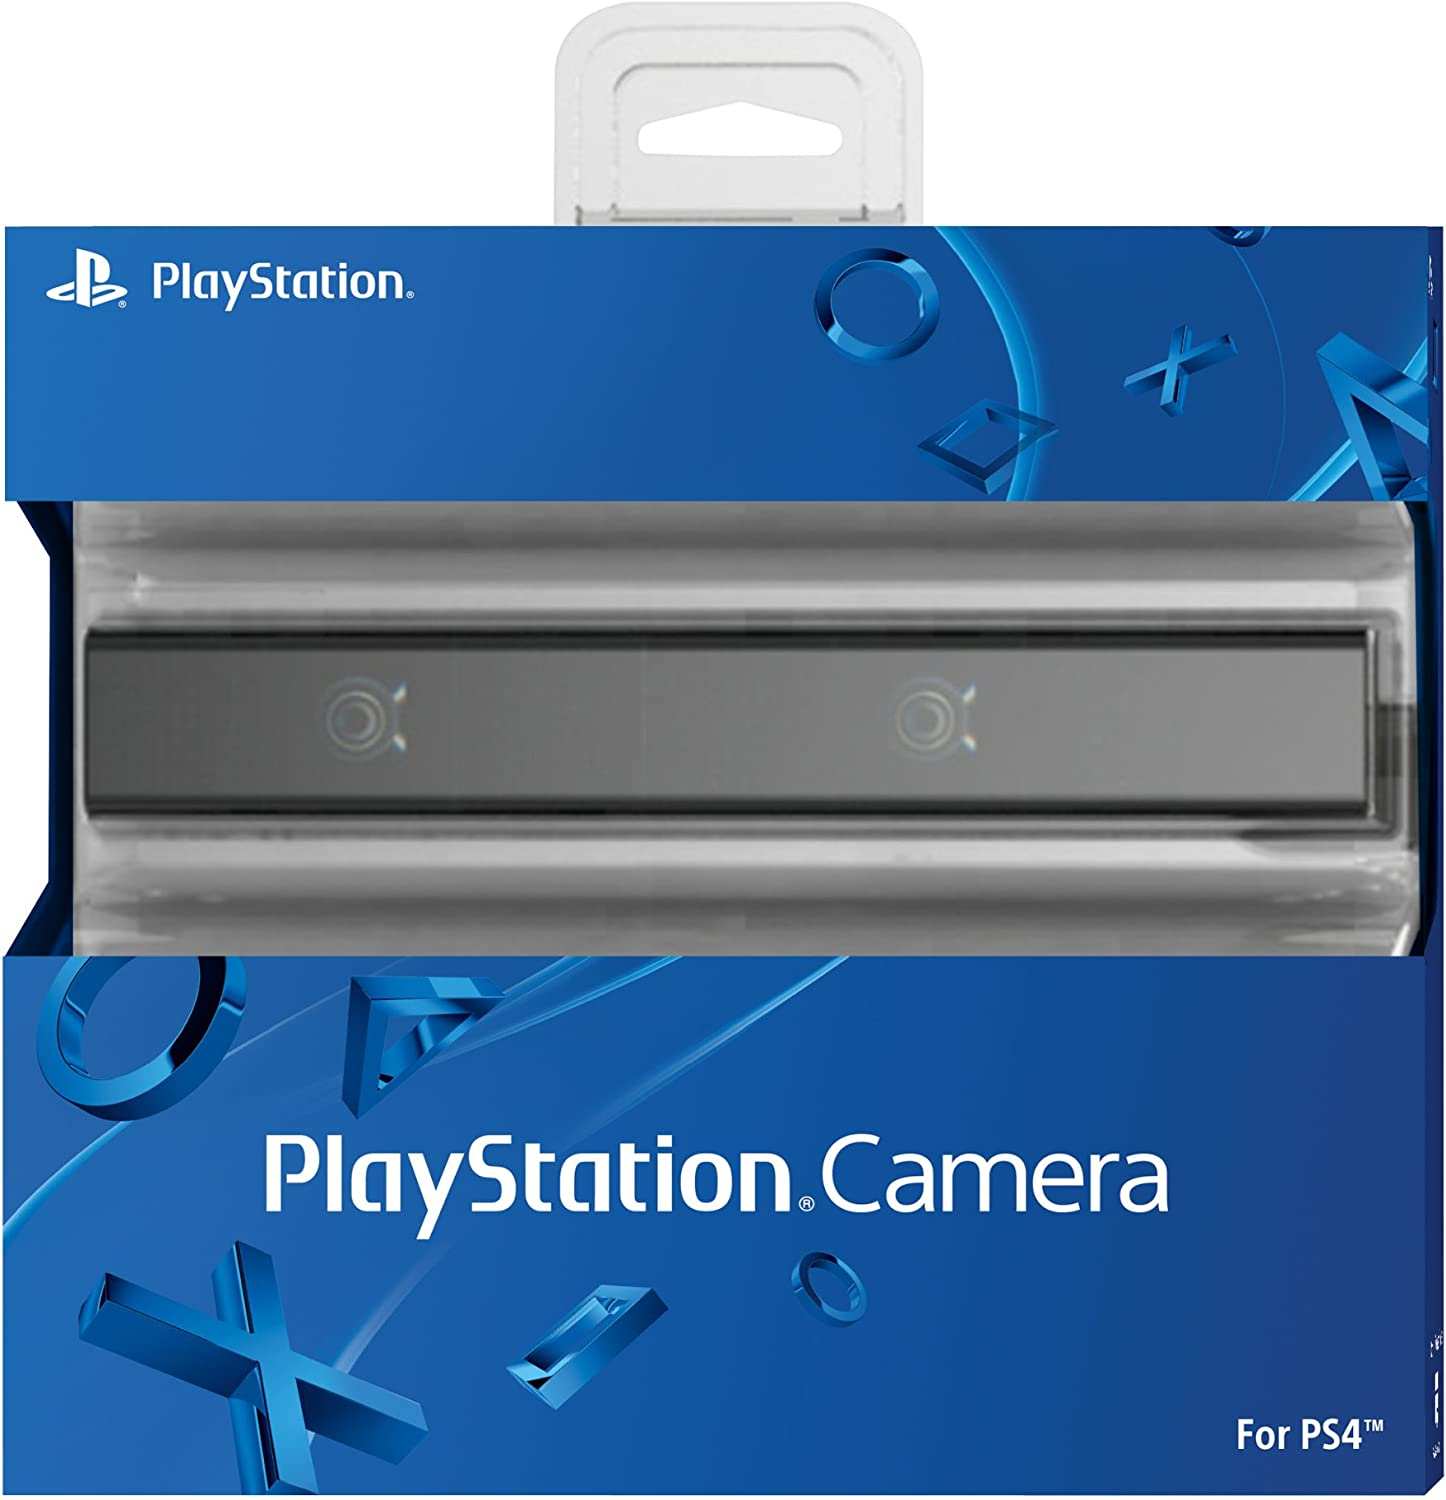 Amazon.com: PlayStation 4 Camera (Old Model): Video Games